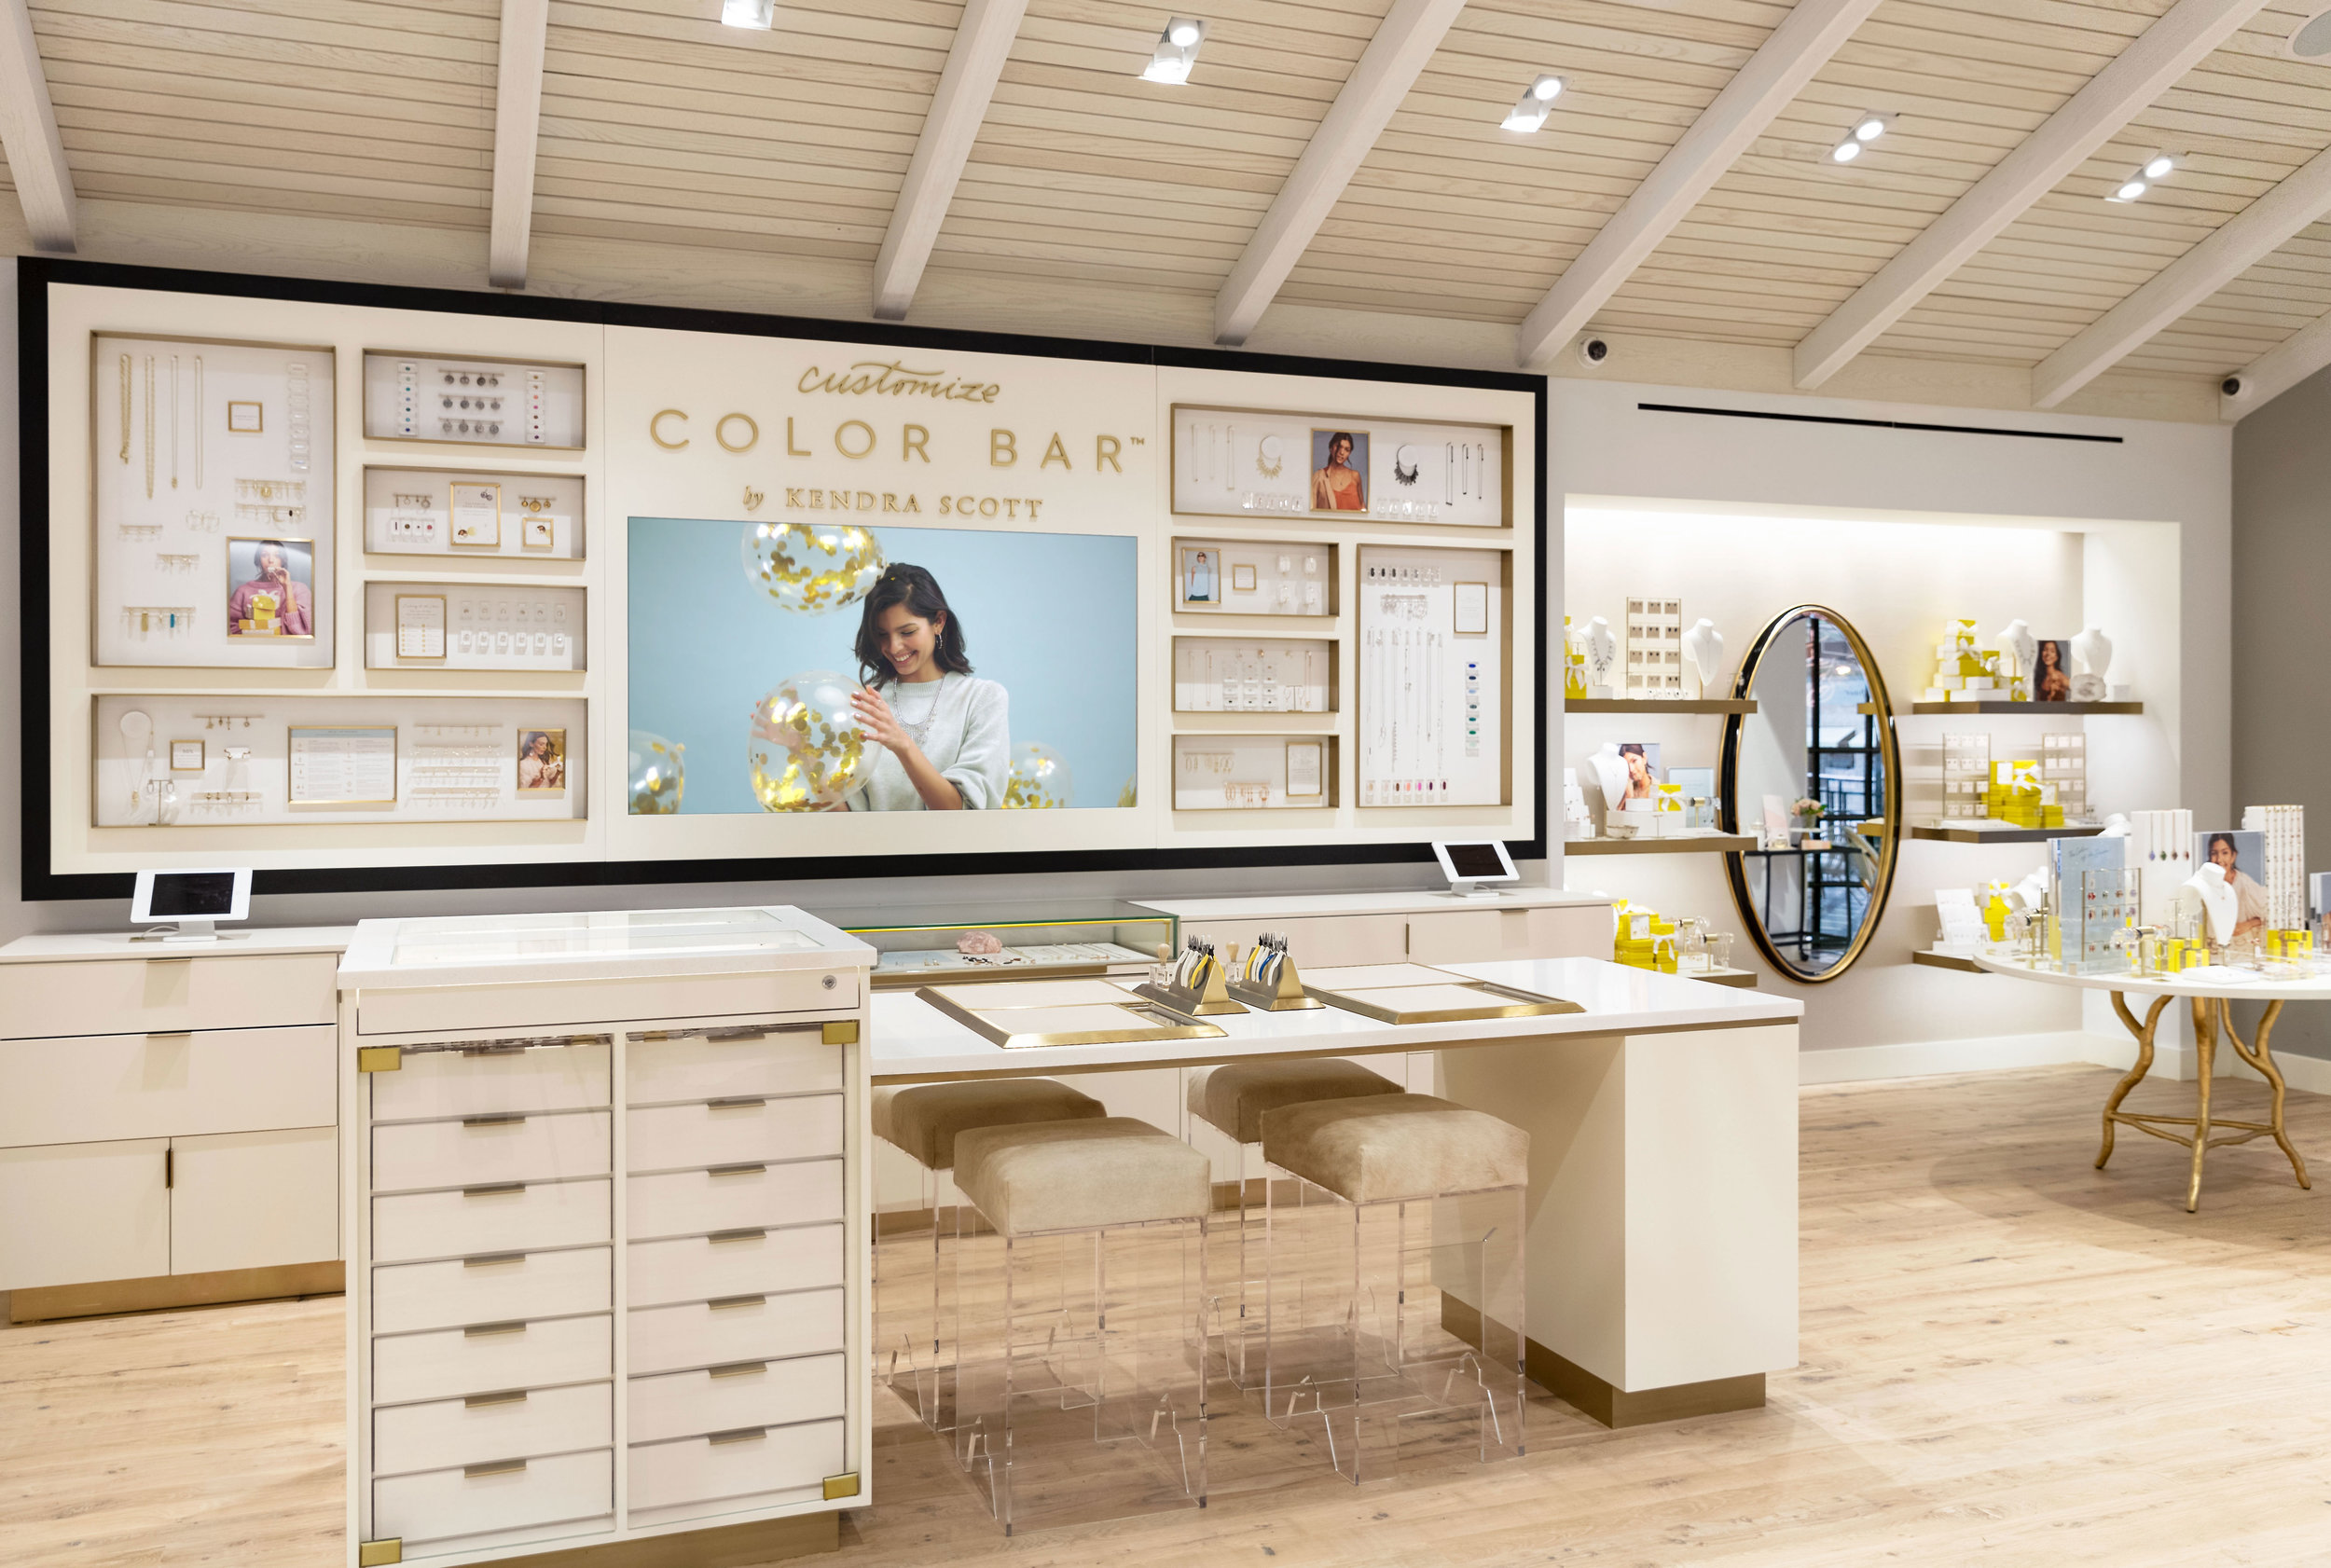 Customize Jewelry at the Kendra Scott Color Bar in Austin Texas